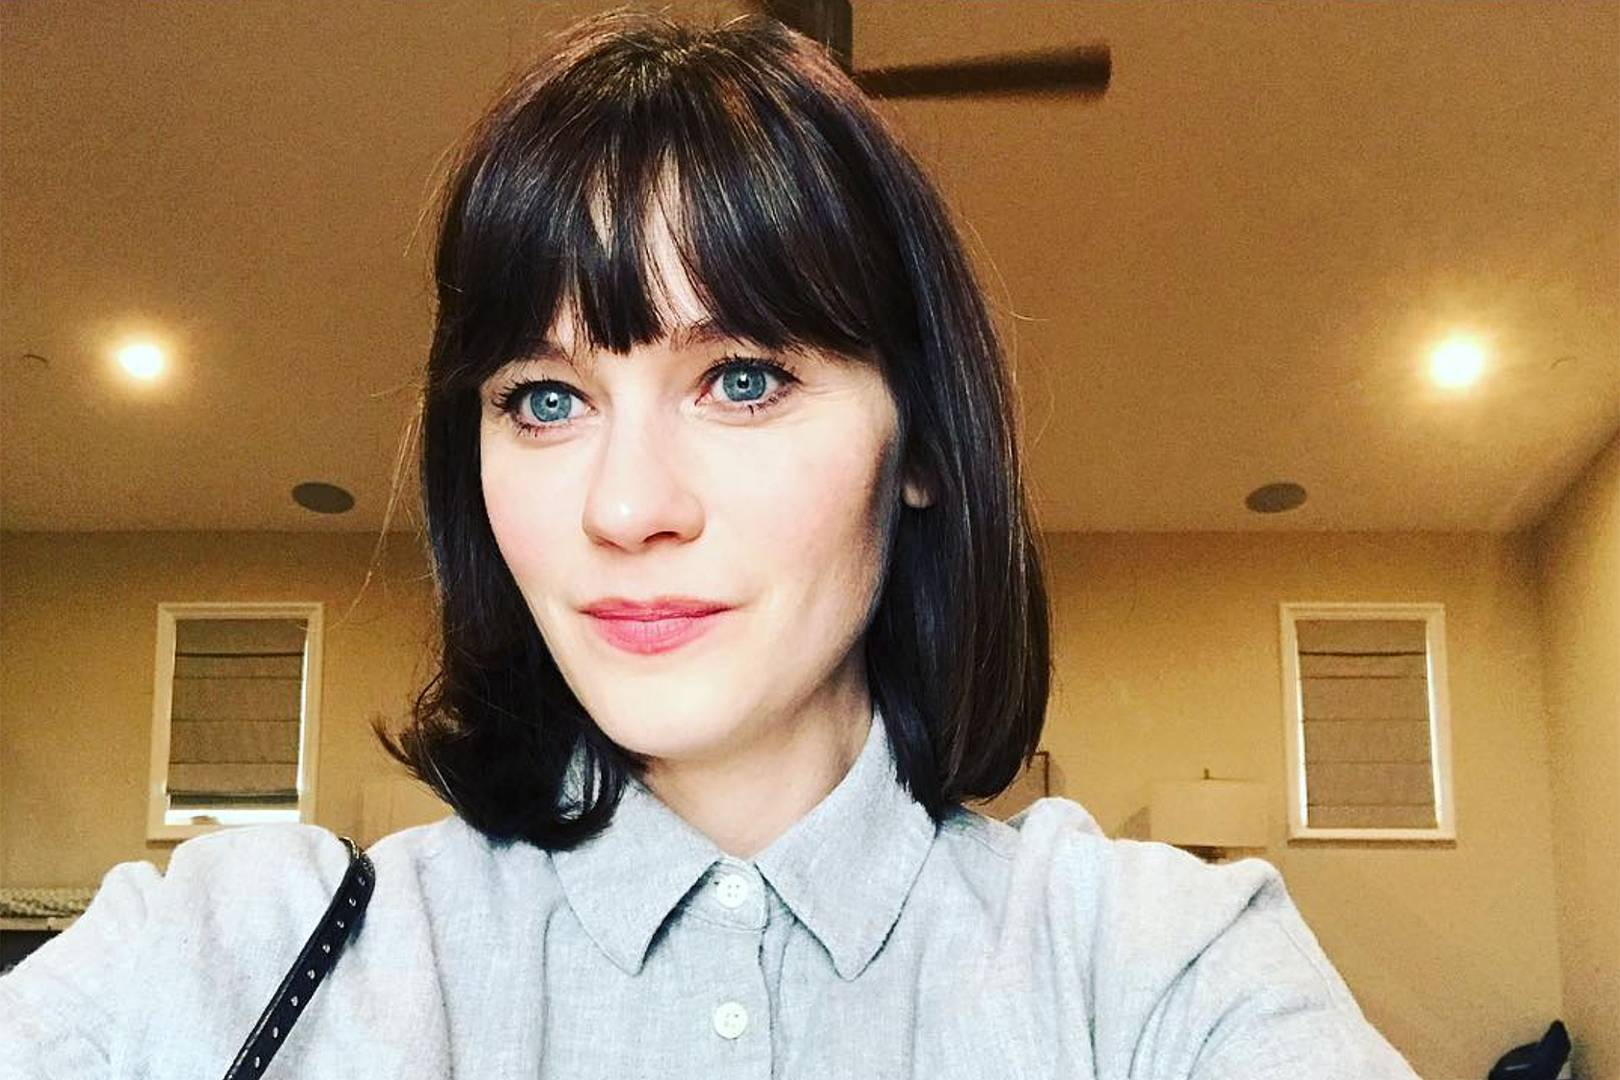 Zooey Deschanel Zooey Deschanel new photo